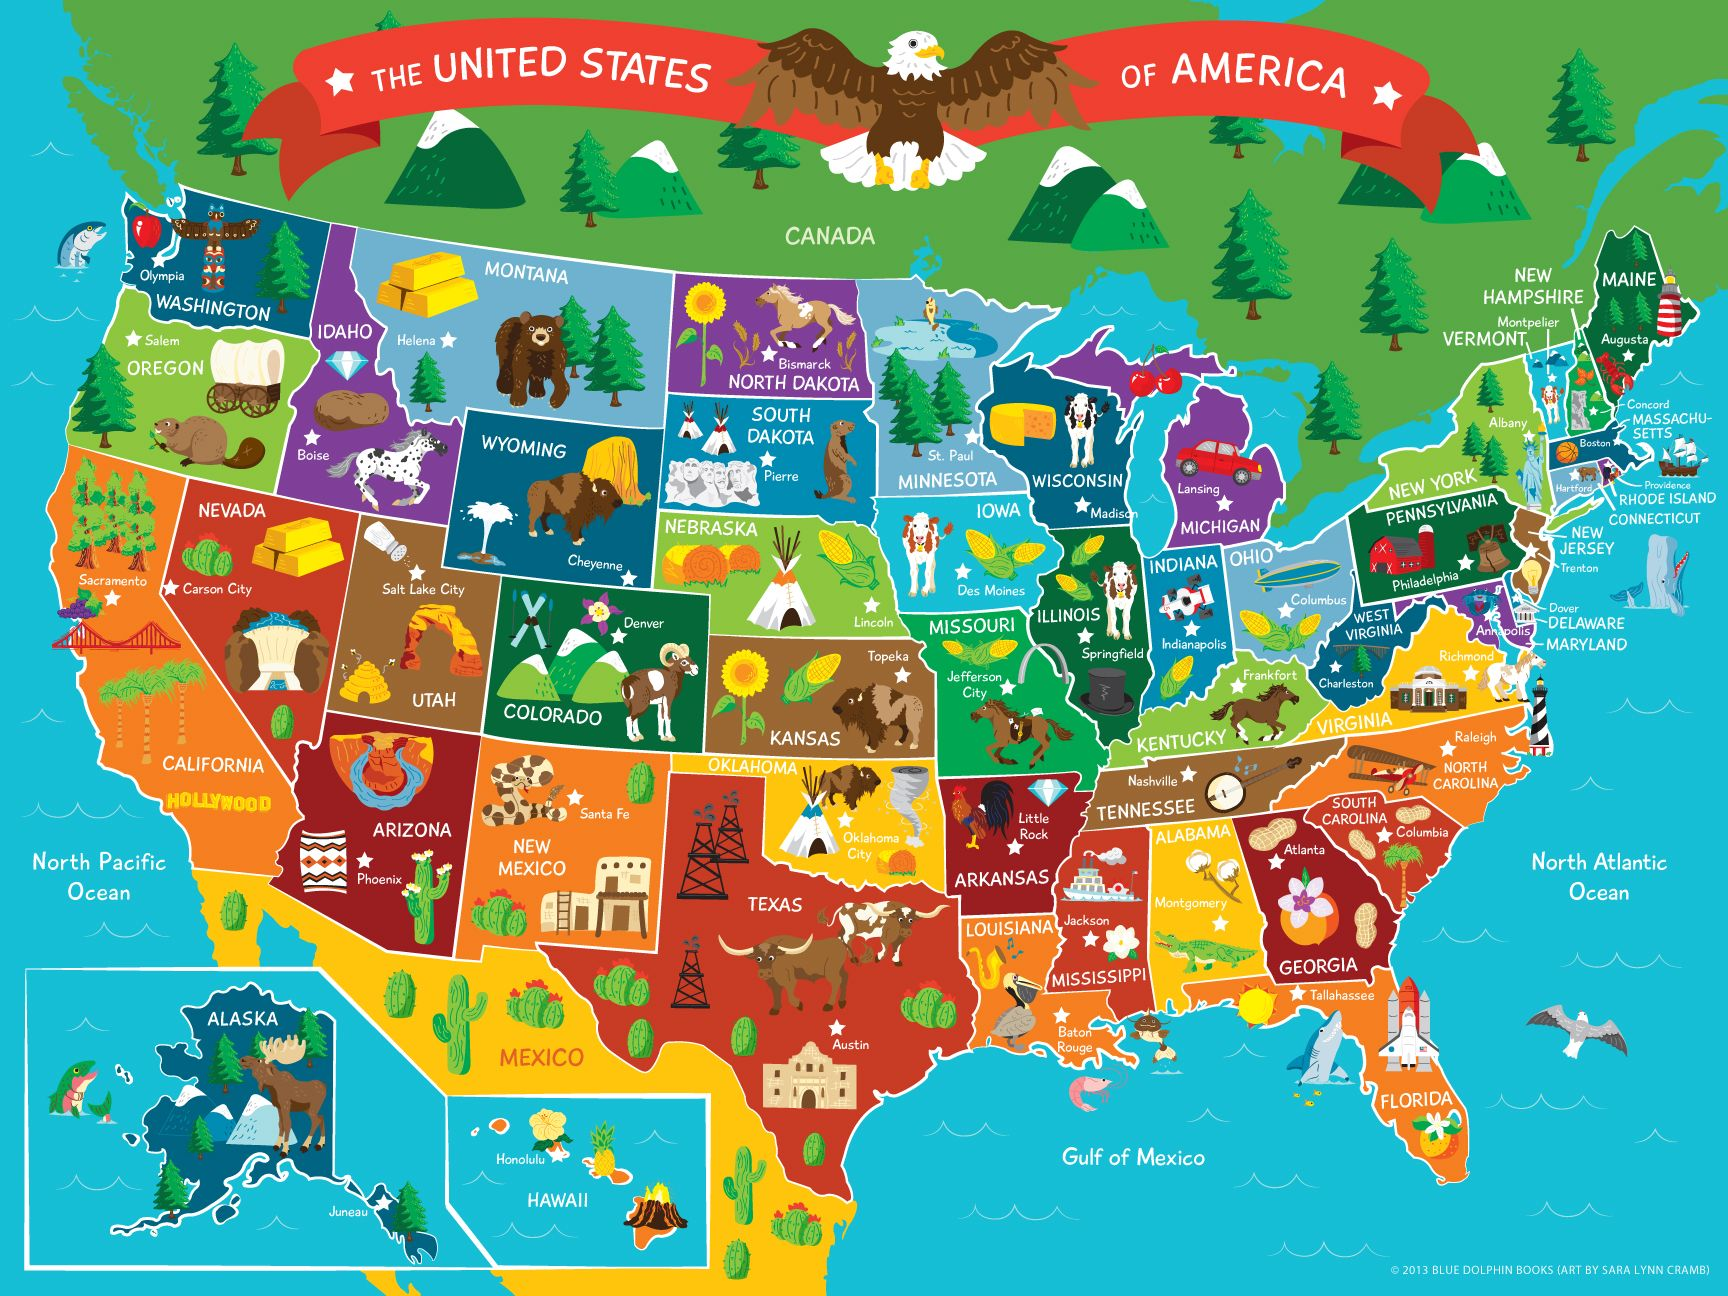 Map Of The United States Of America Map Vector Monuments - A picture of the united states of america map